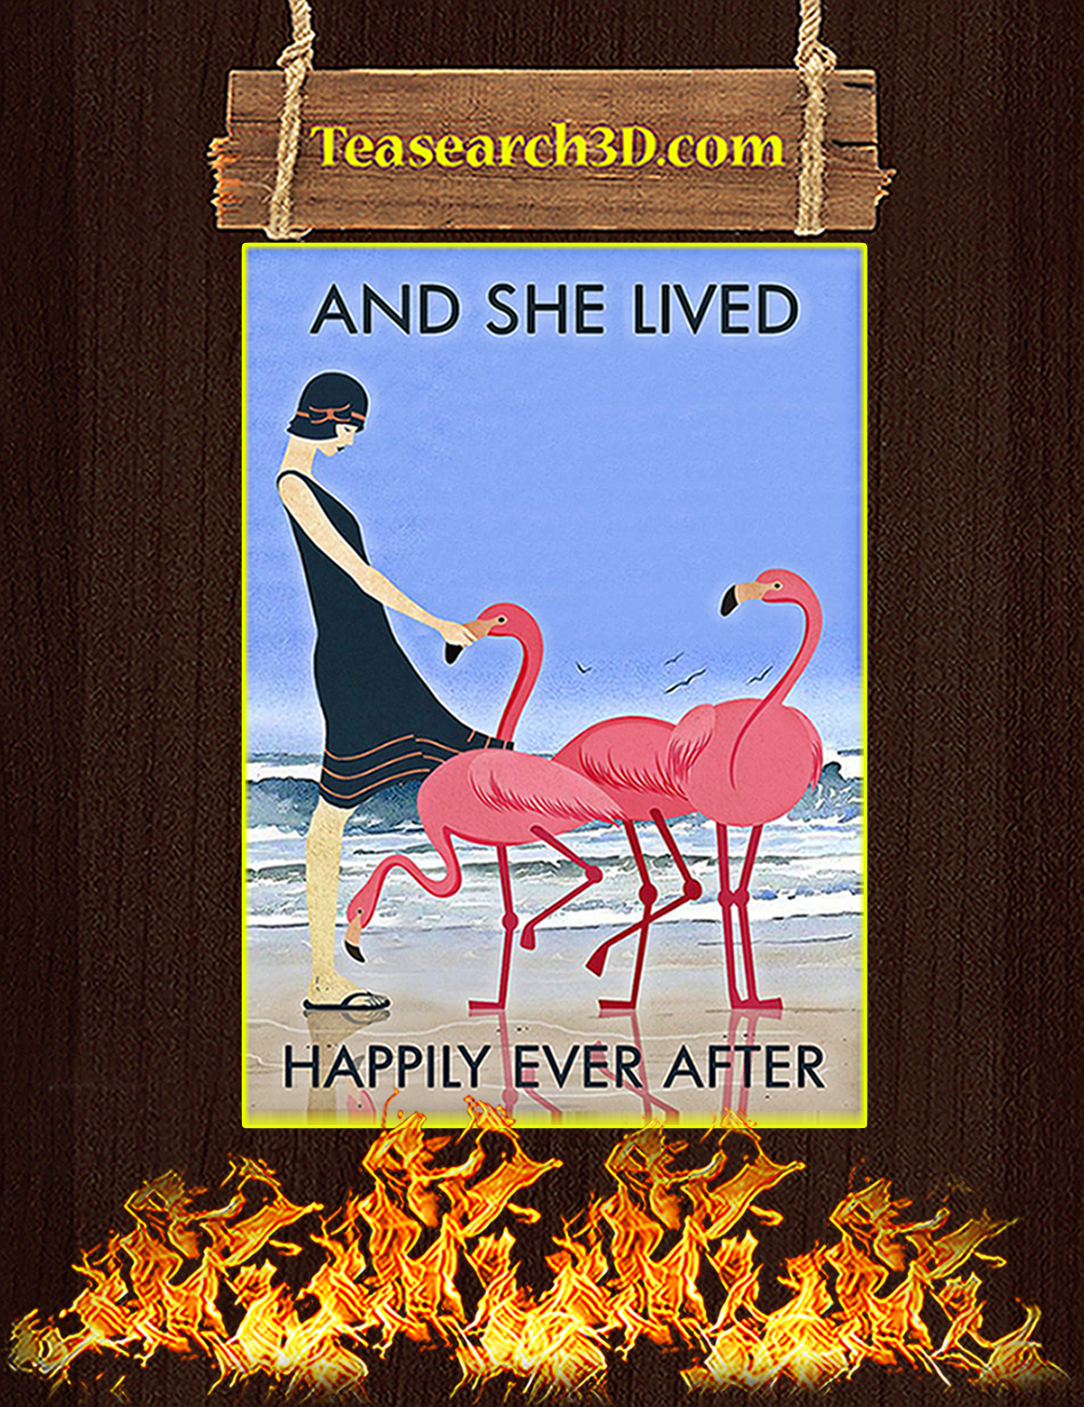 Flamingo And she lived happily ever after poster A2